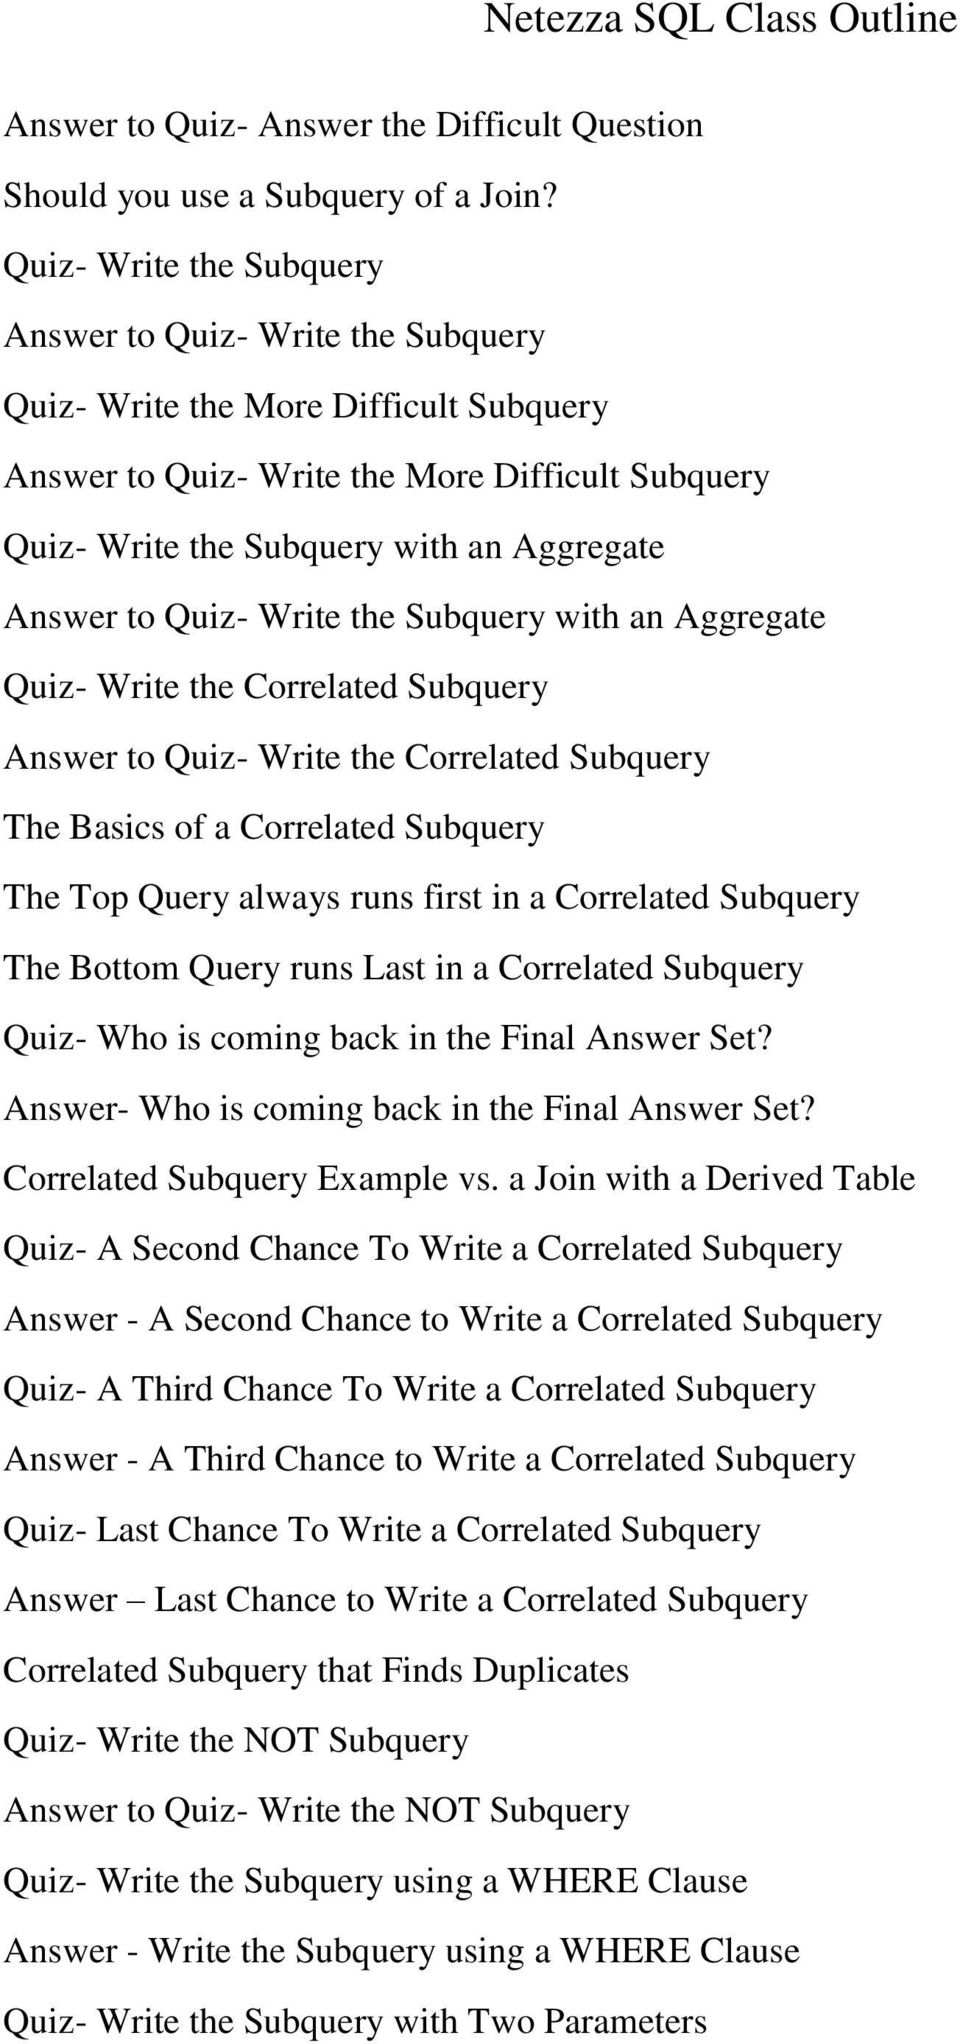 to Quiz- Write the Subquery with an Aggregate Quiz- Write the Correlated Subquery Answer to Quiz- Write the Correlated Subquery The Basics of a Correlated Subquery The Top Query always runs first in